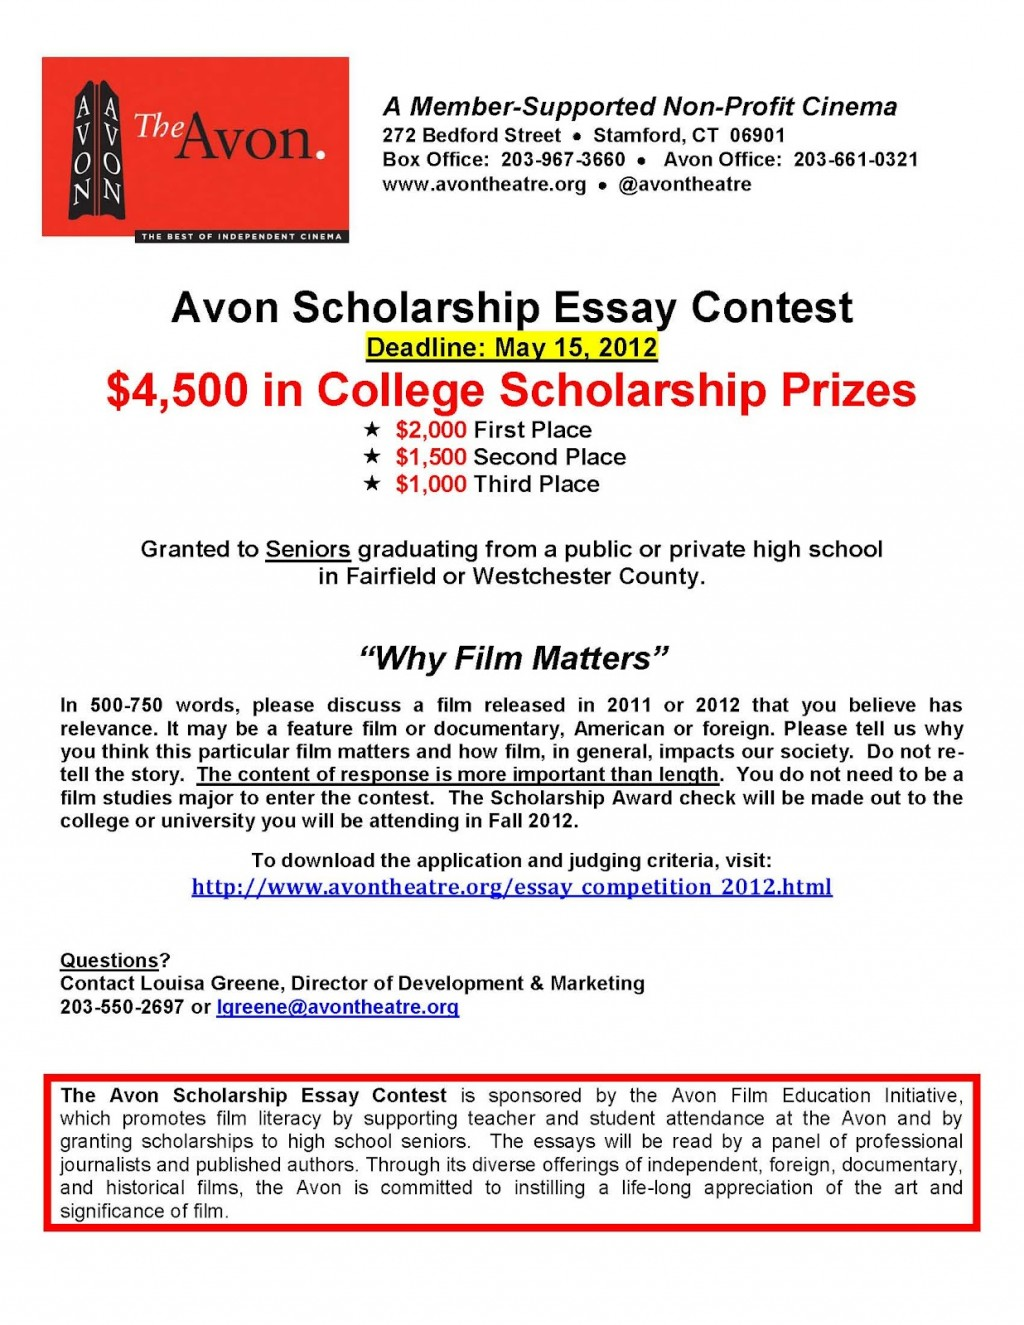 002 No Essay Collegeip Prowler Freeips For High School Seniors Avonscholarshipessaycontest2012 In Texas California Class Of Short Example Wondrous Scholarship Scholarships 2019 Large